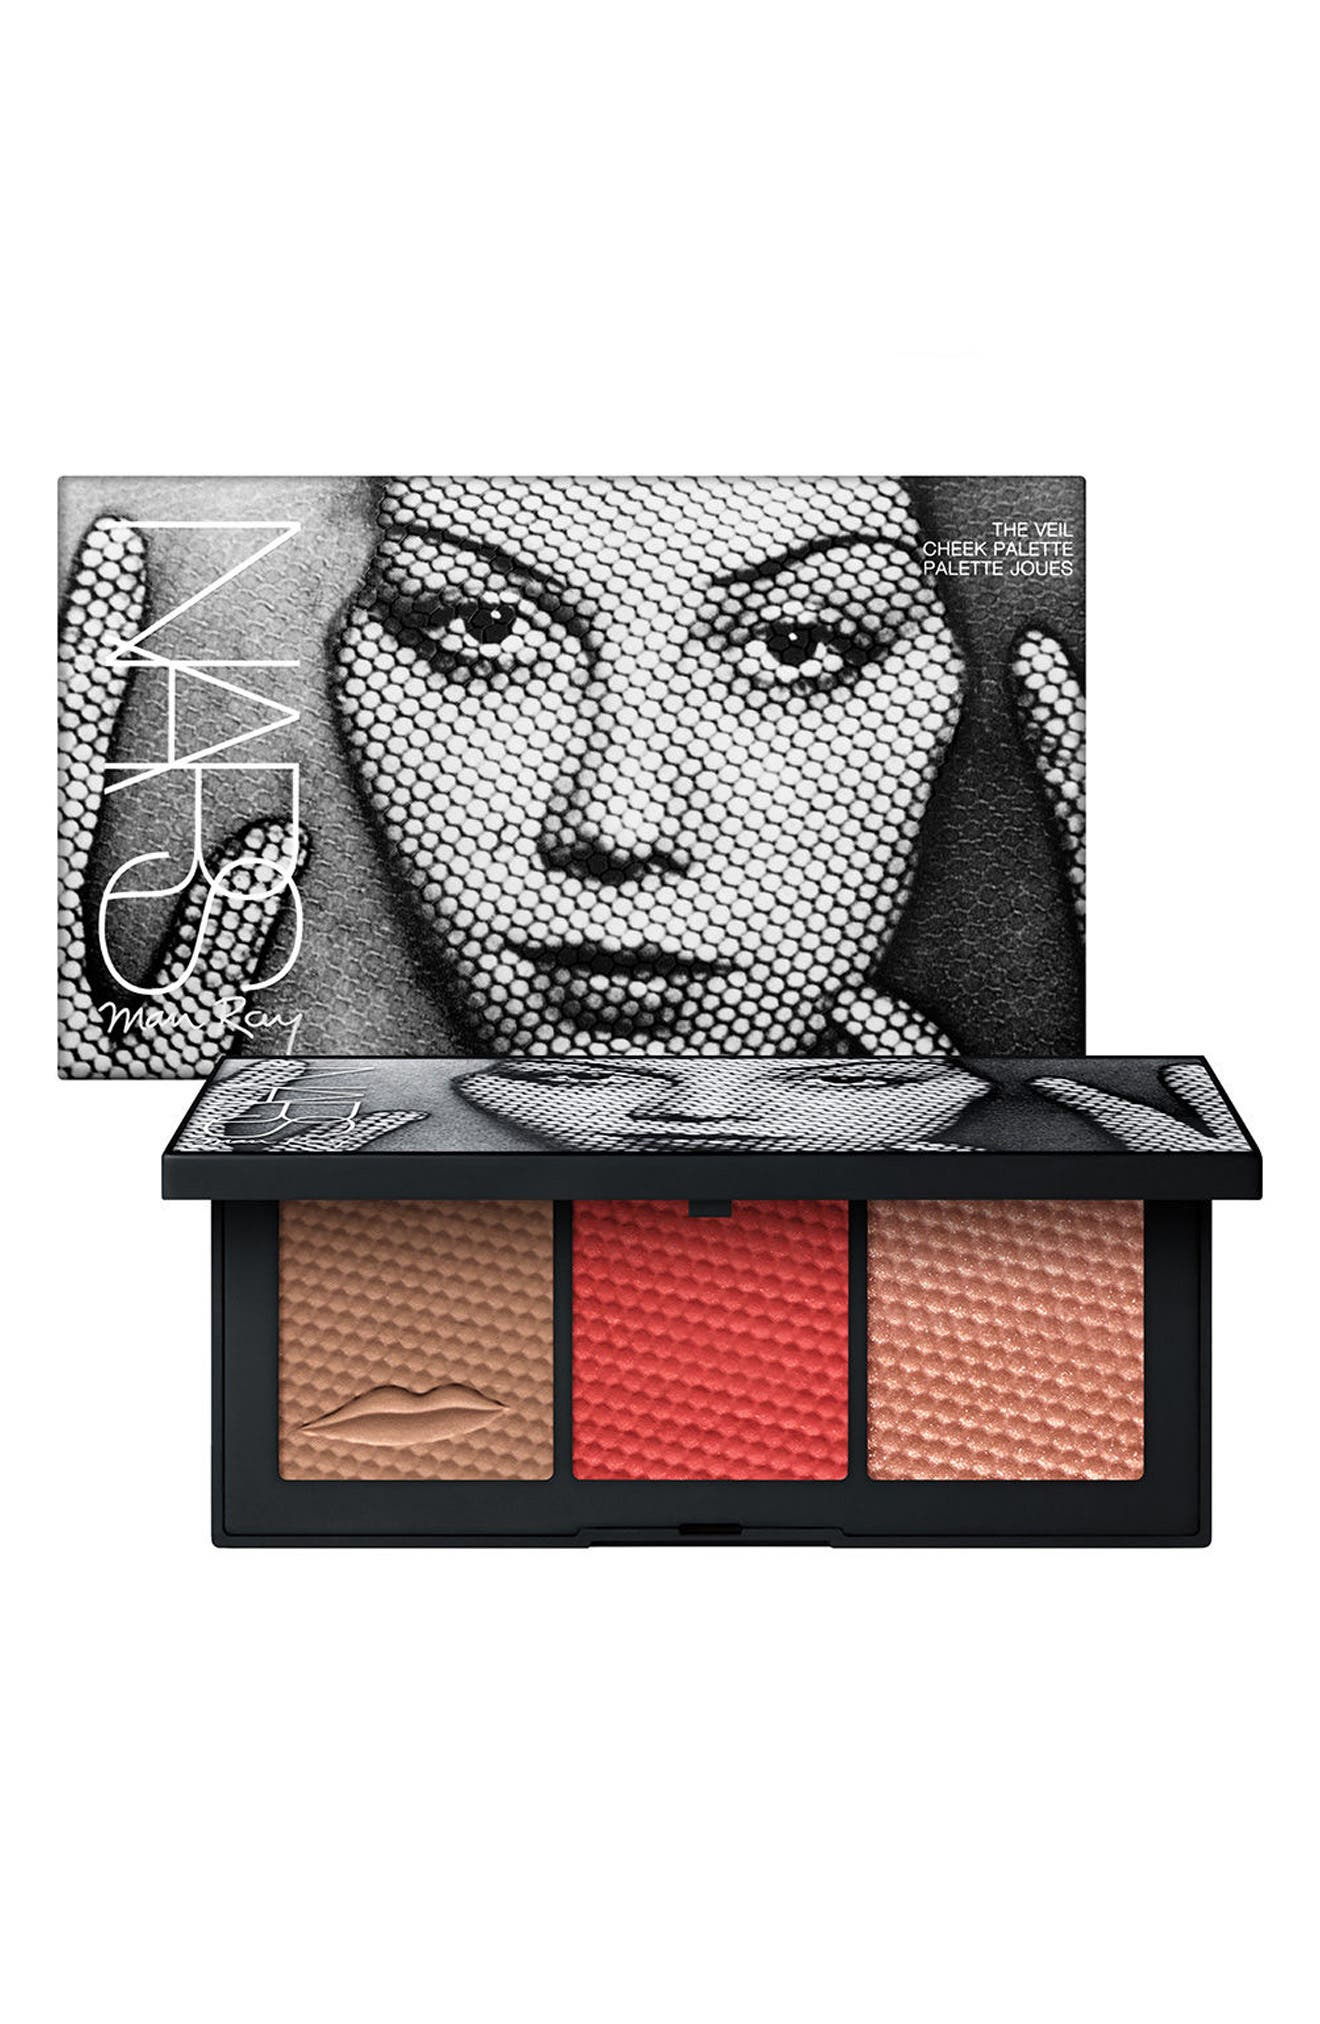 NARS Man Ray The Veil Cheek Palette ($155.68 Value)